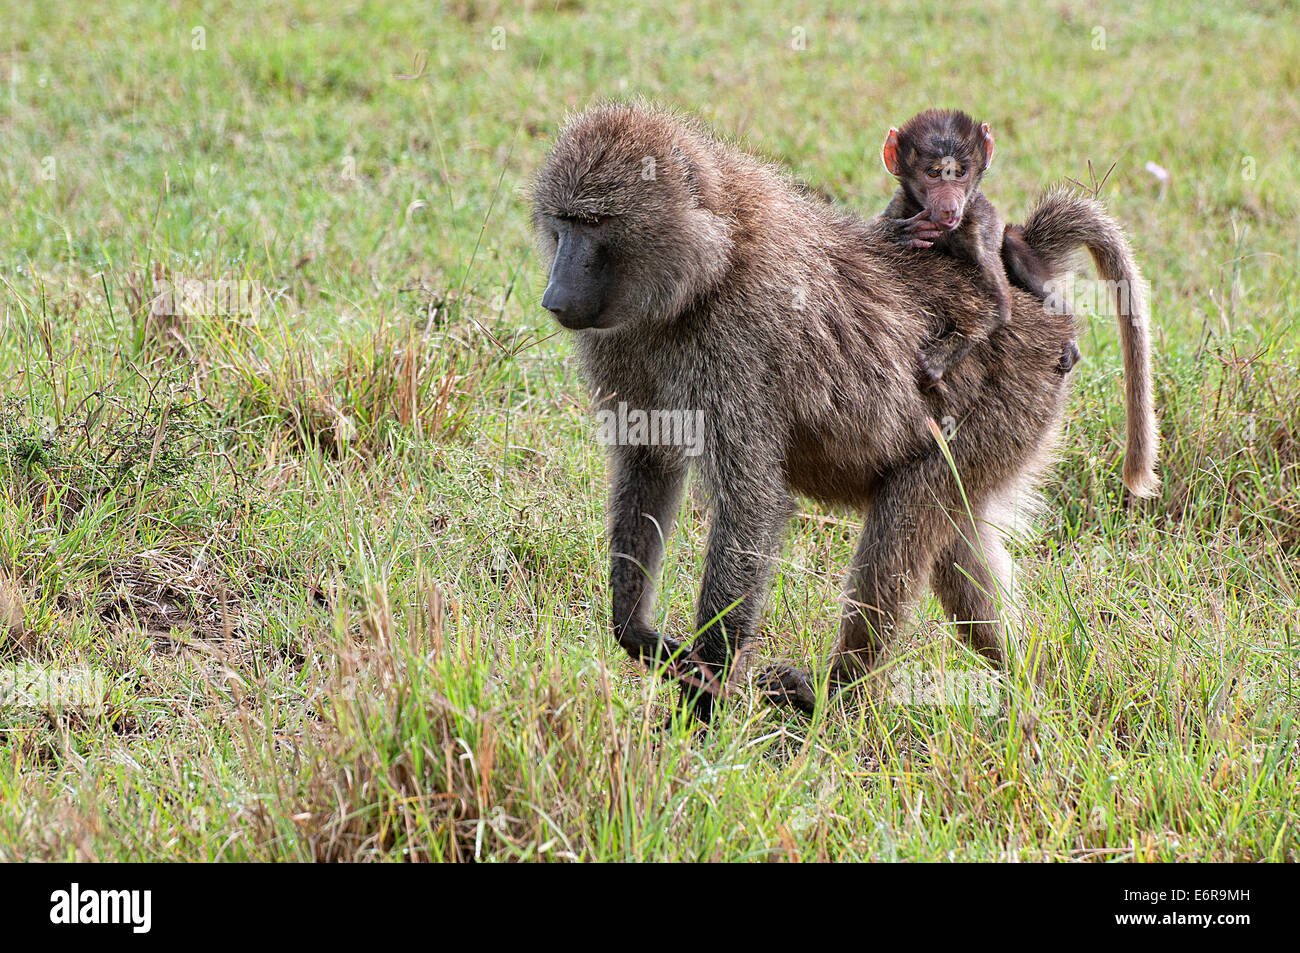 Female Olive Baboon carrying a baby on her back through grassland in Lake Nakuru National Park Kenya East Africa - Stock Image